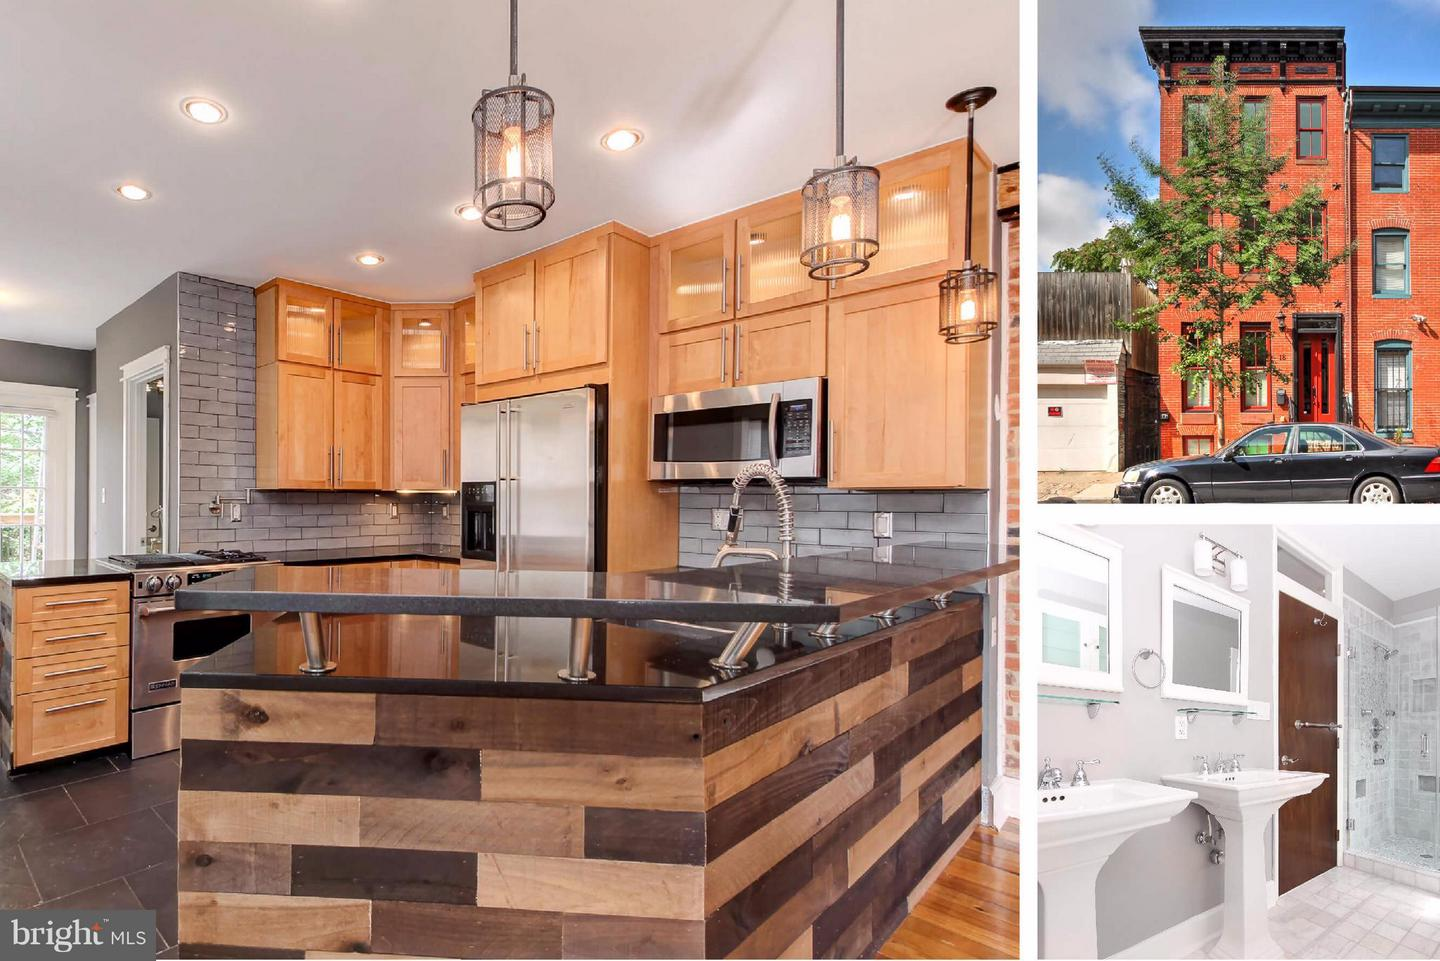 Other Residential for Sale at 18 Wolfe St S Baltimore, Maryland 21231 United States